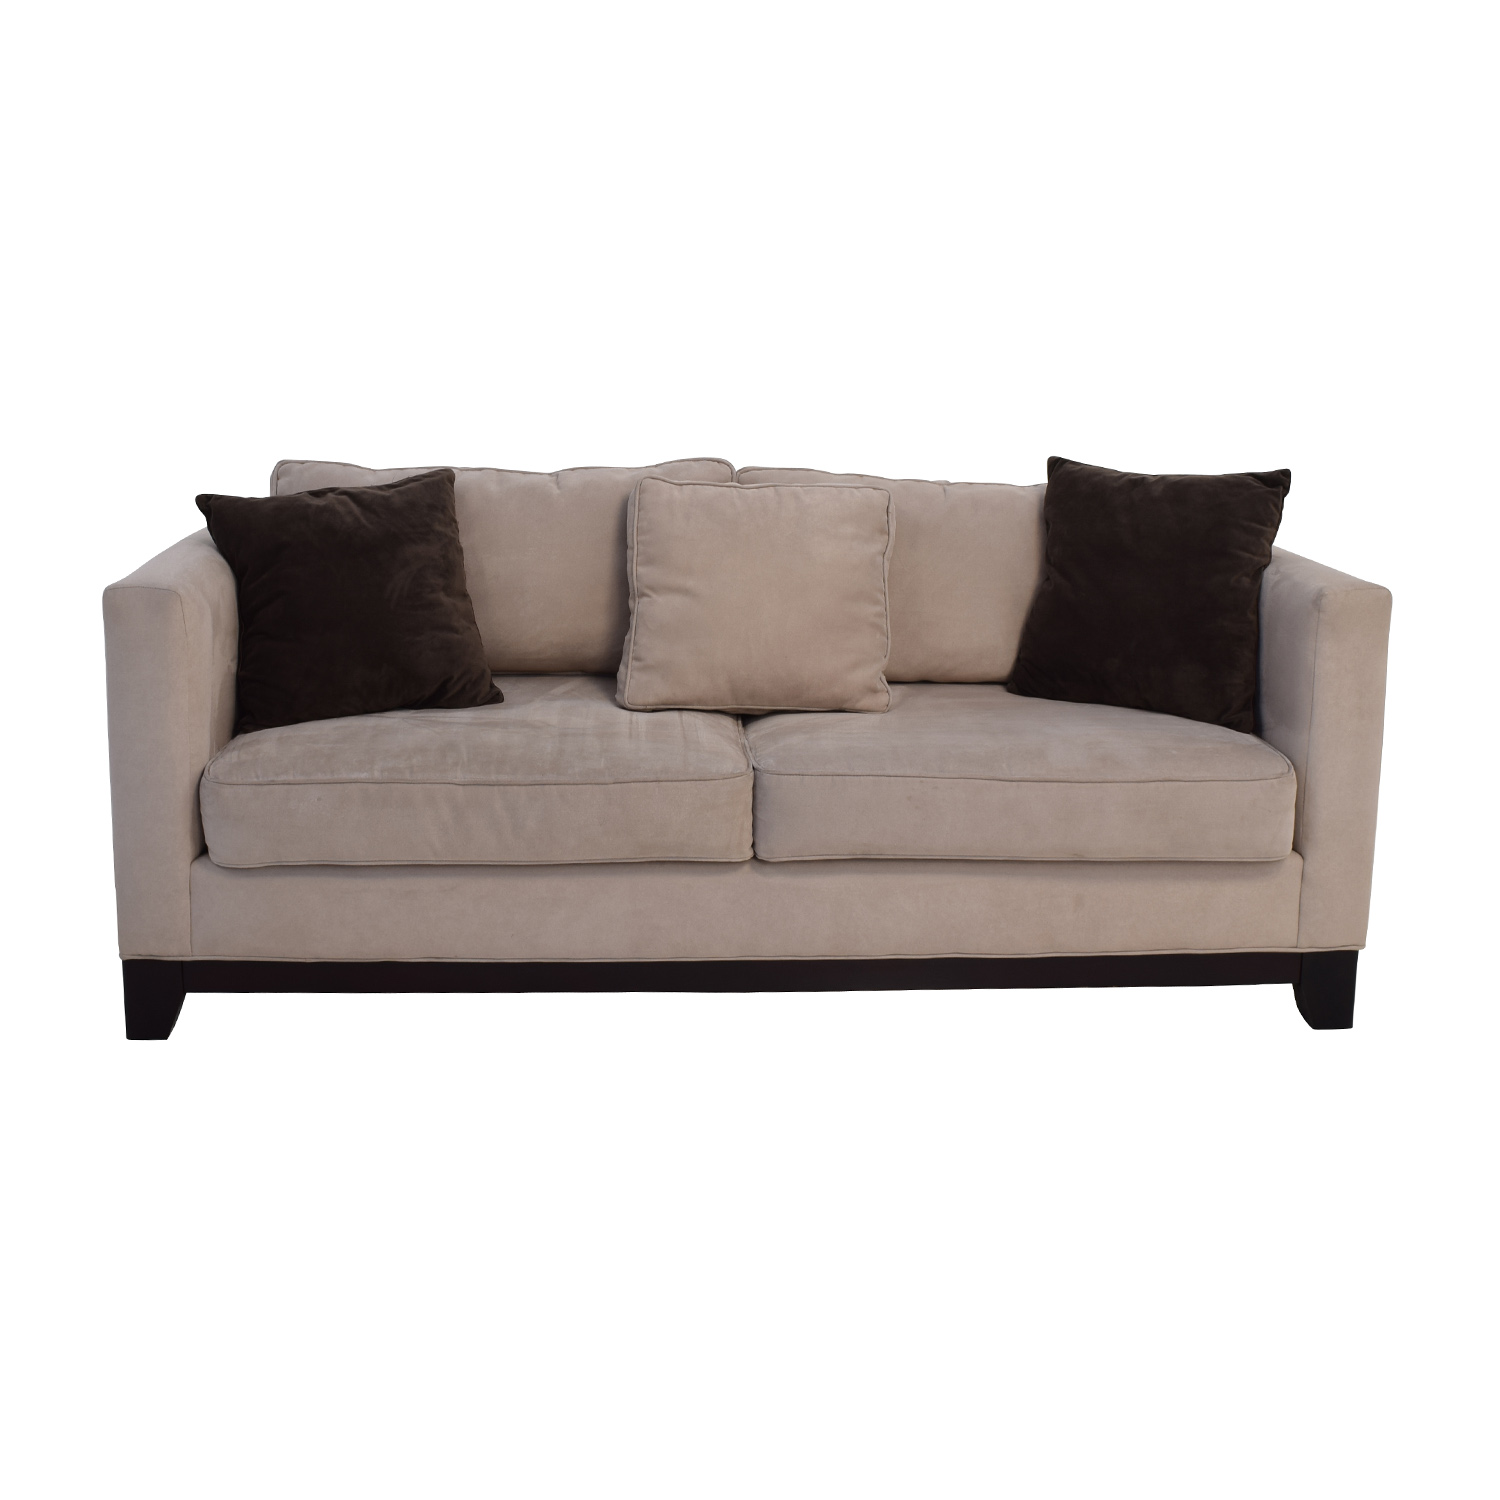 Sofas Beige 60 Off Bauhaus Bauhaus Beige Microsuede Couch With Toss